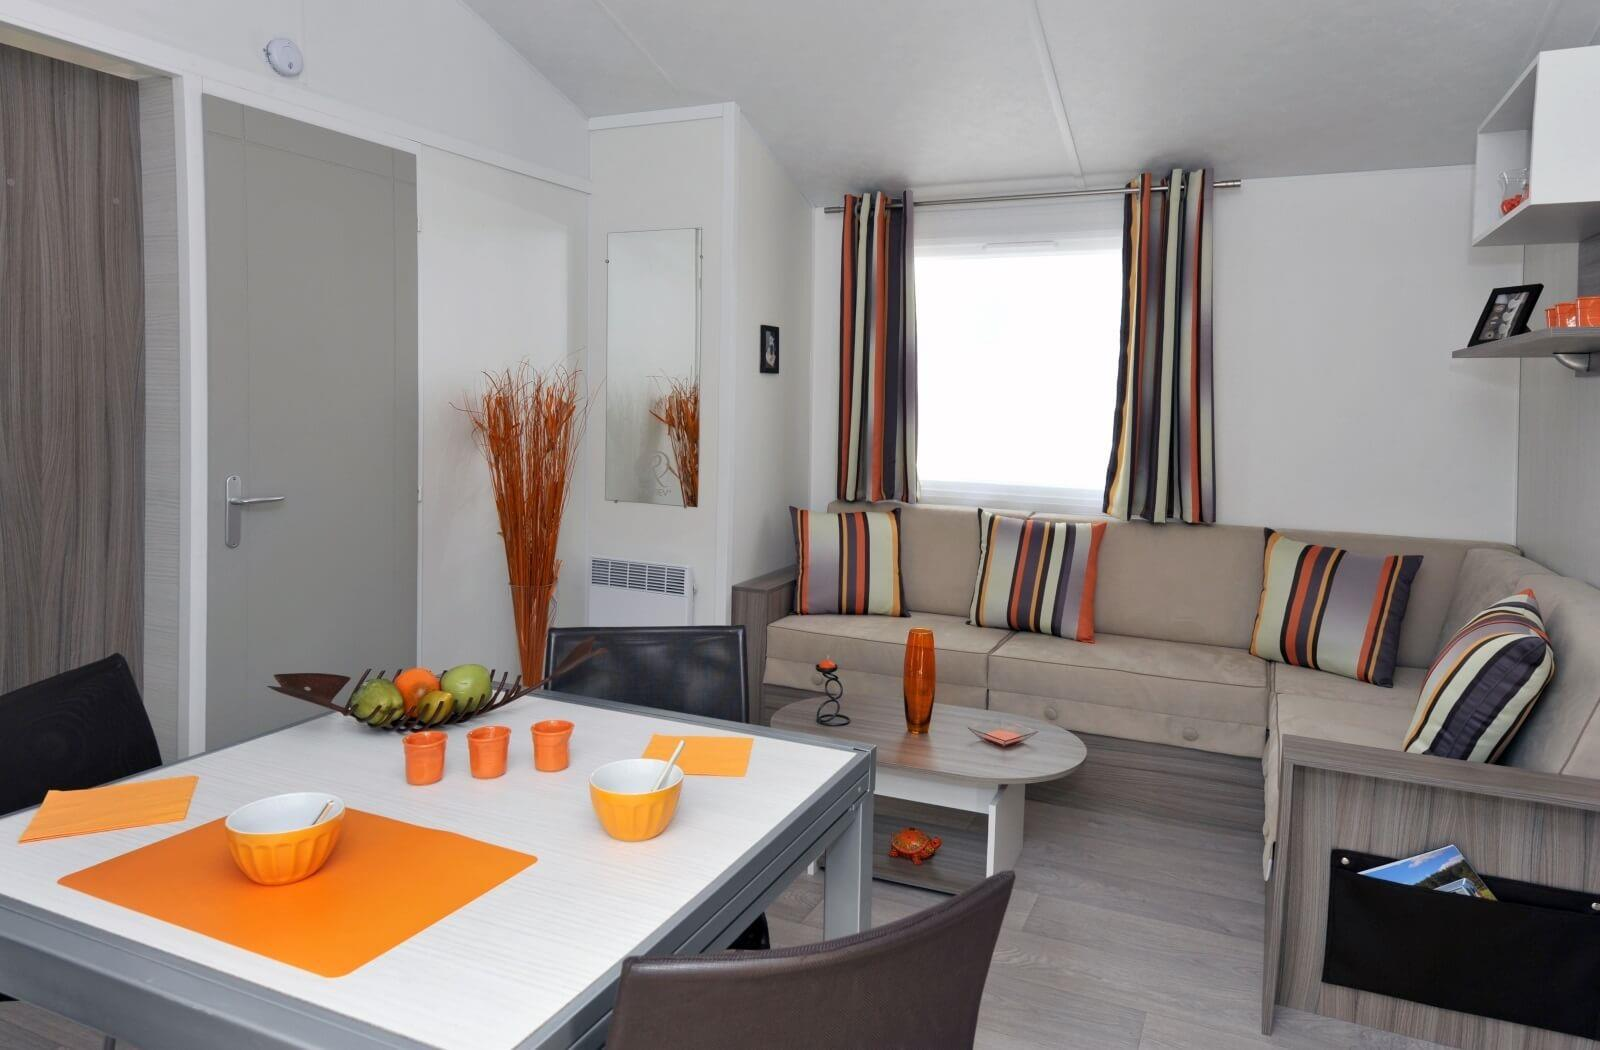 Location - Mobil-Home Vip 2 Chambres > 28 M² - Camping Les Mizottes